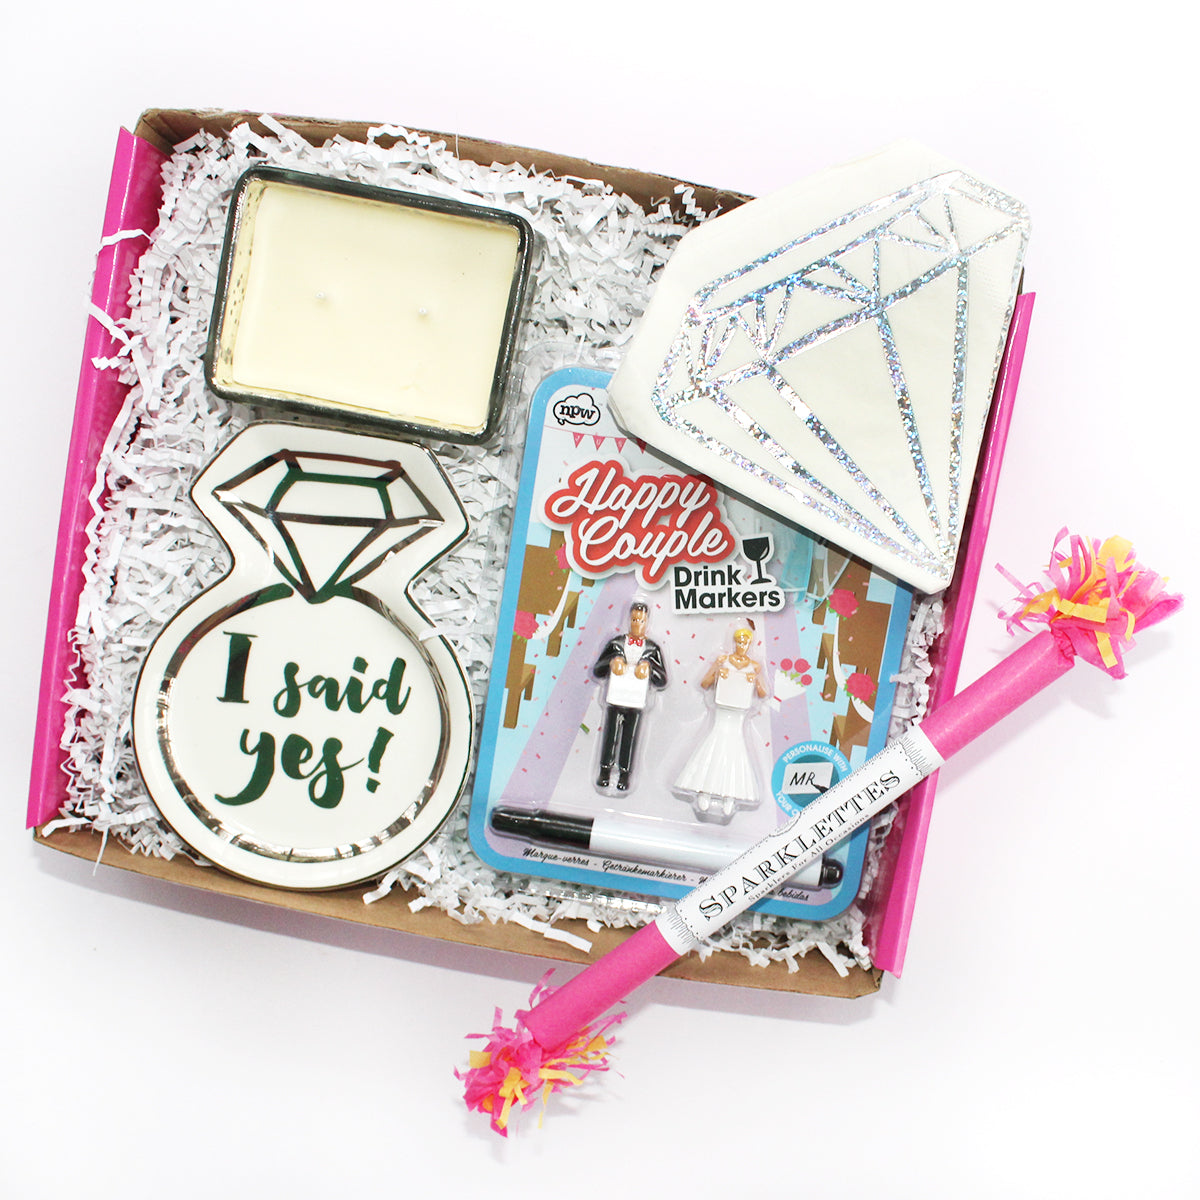 I Said yes gift box full of wedding essentials candles, trinket tray, drink markers, happy couple, diamond napkins